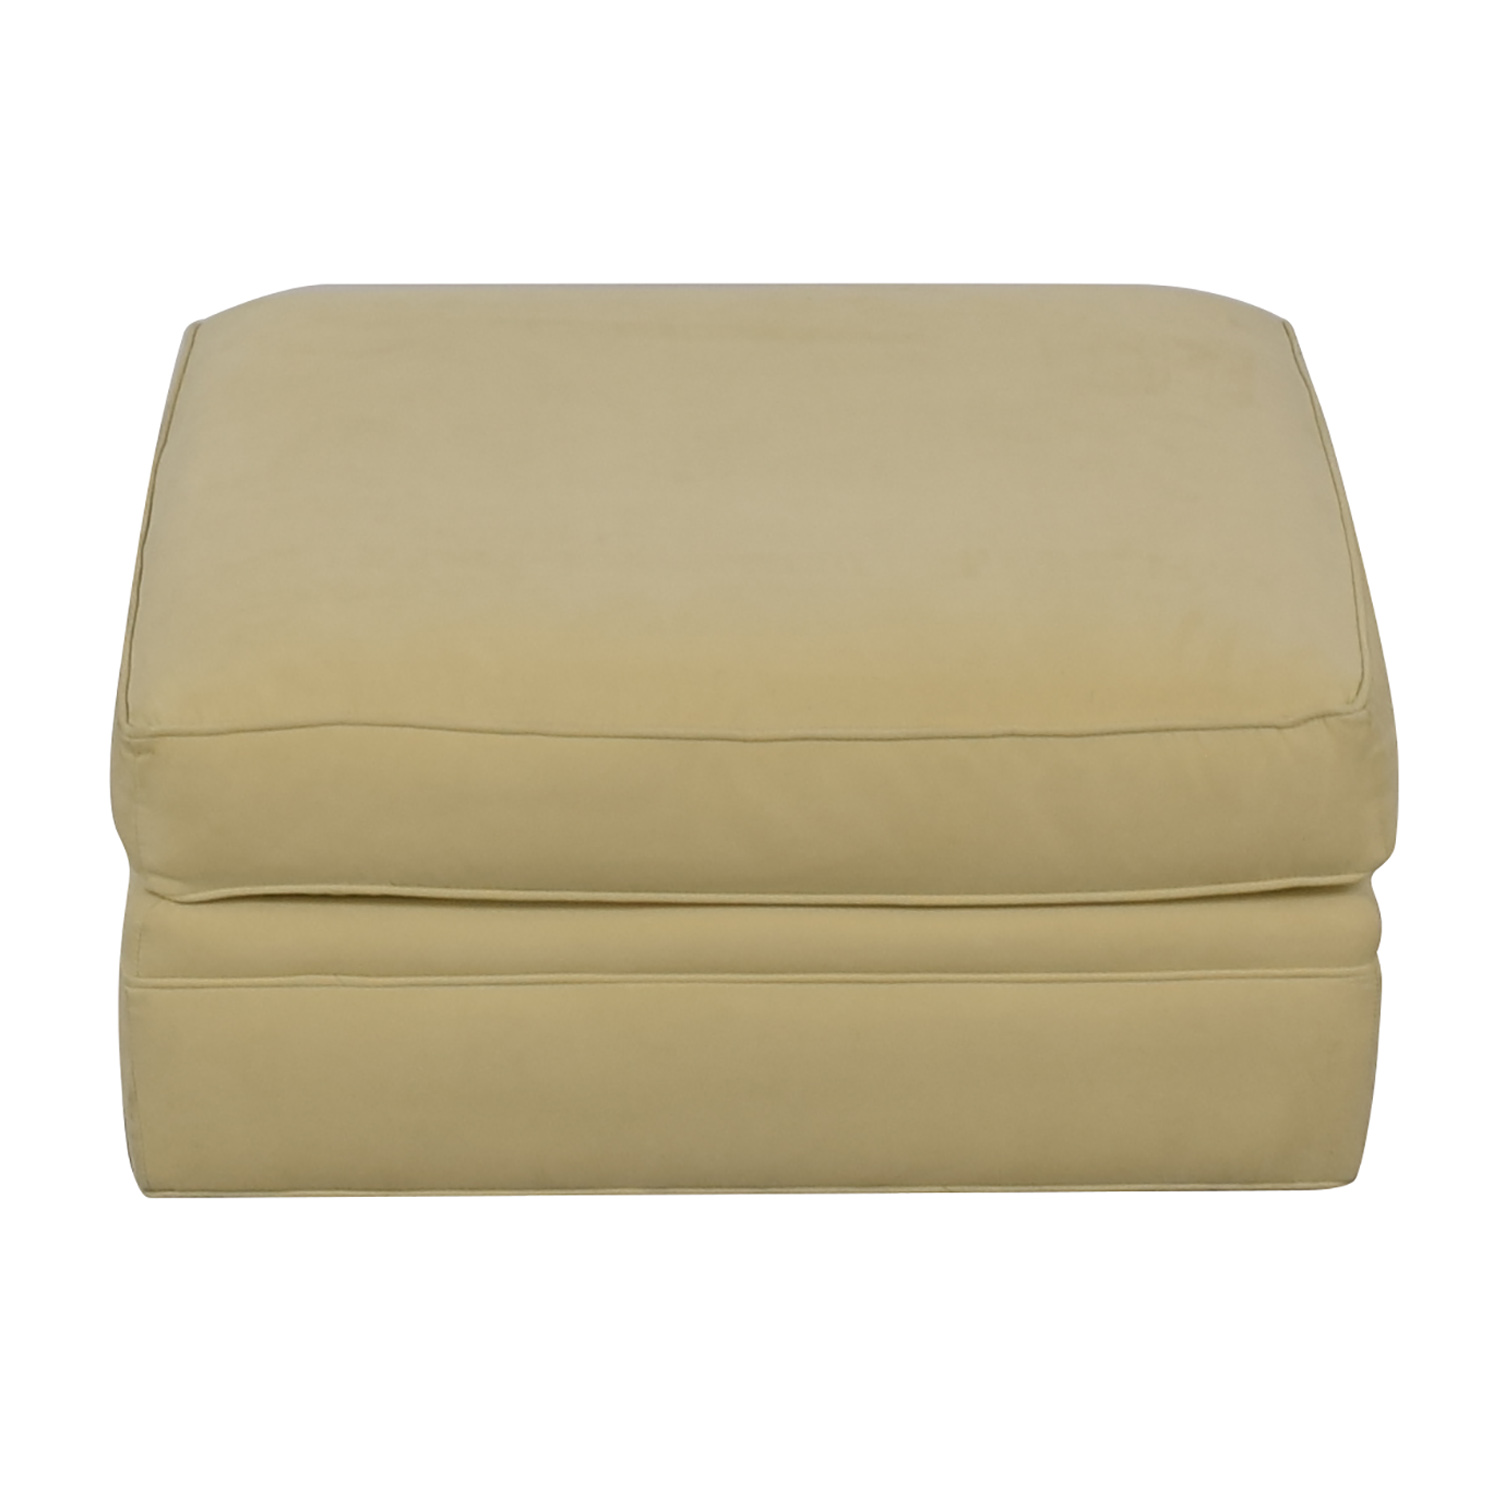 Crate & Barrel Beige Ottoman / Ottomans